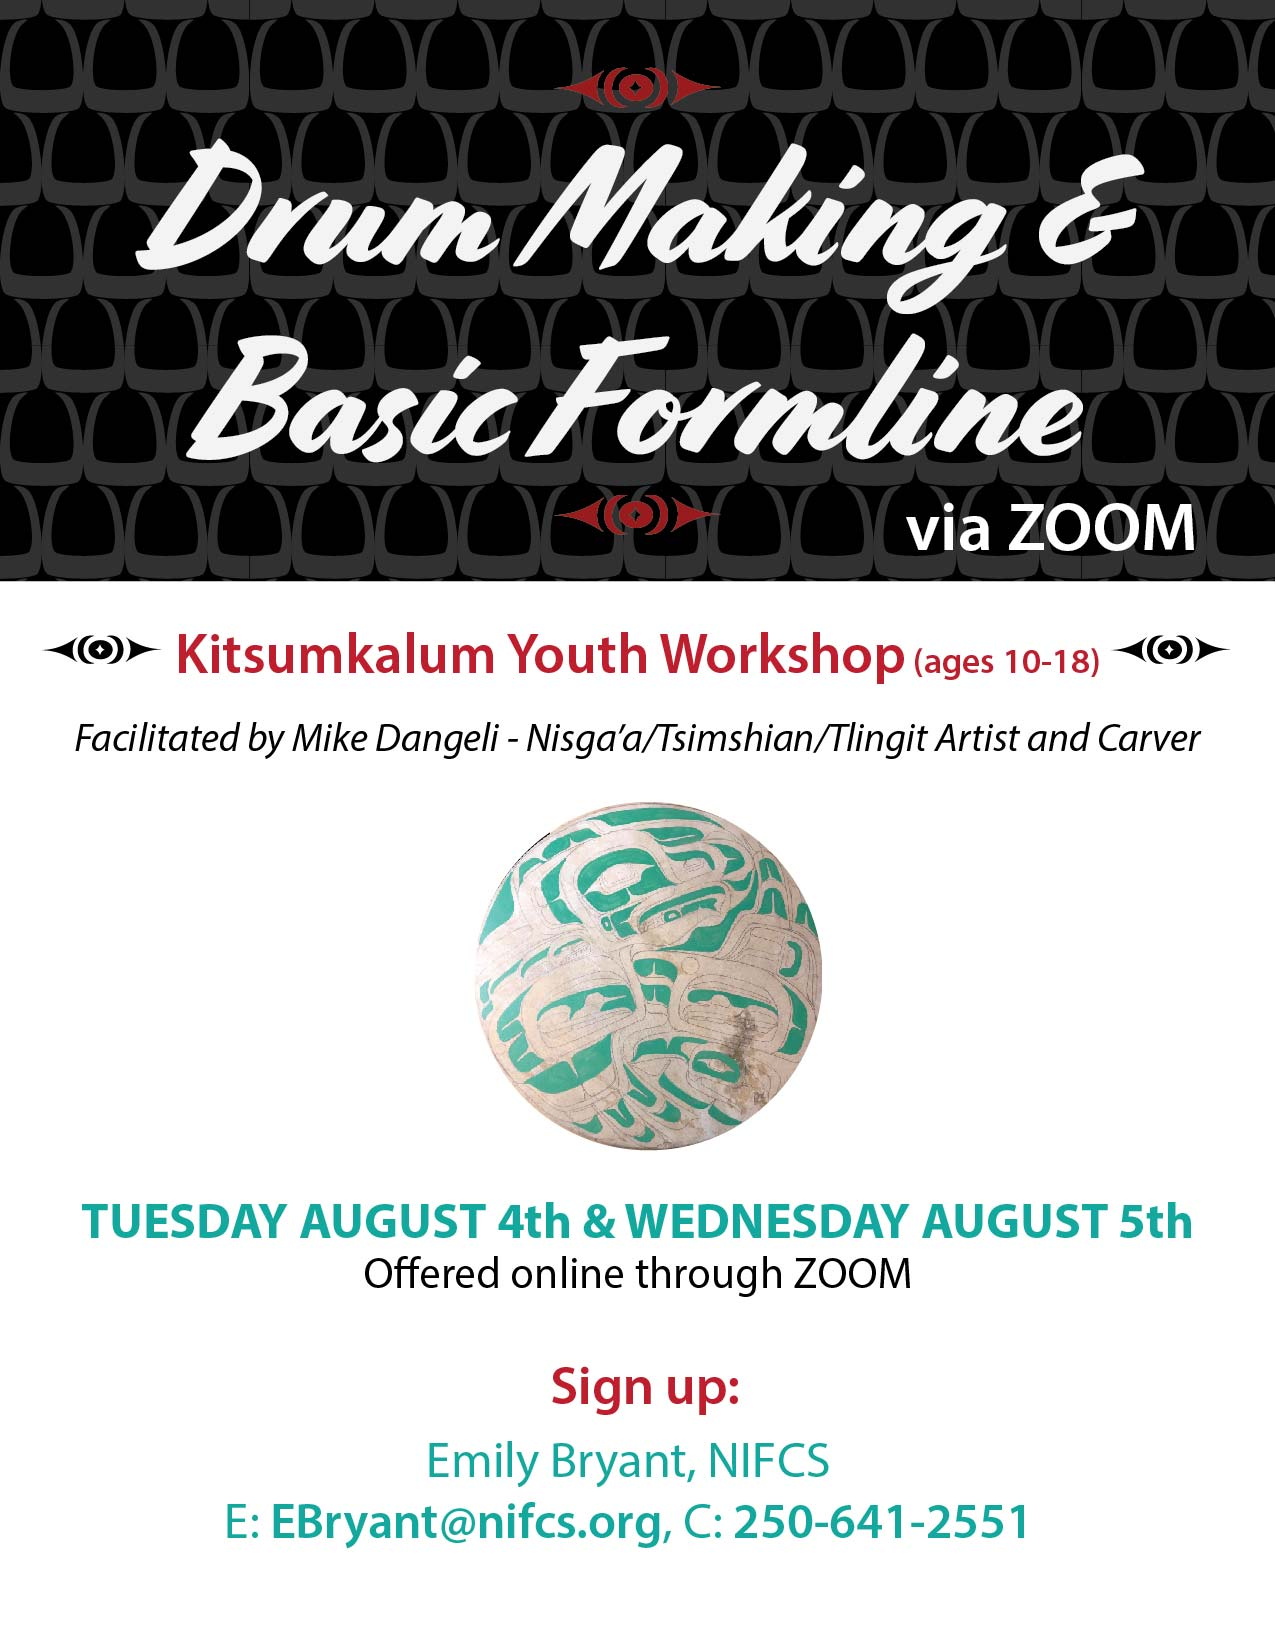 Drum Making for Youth August 4th and 5th